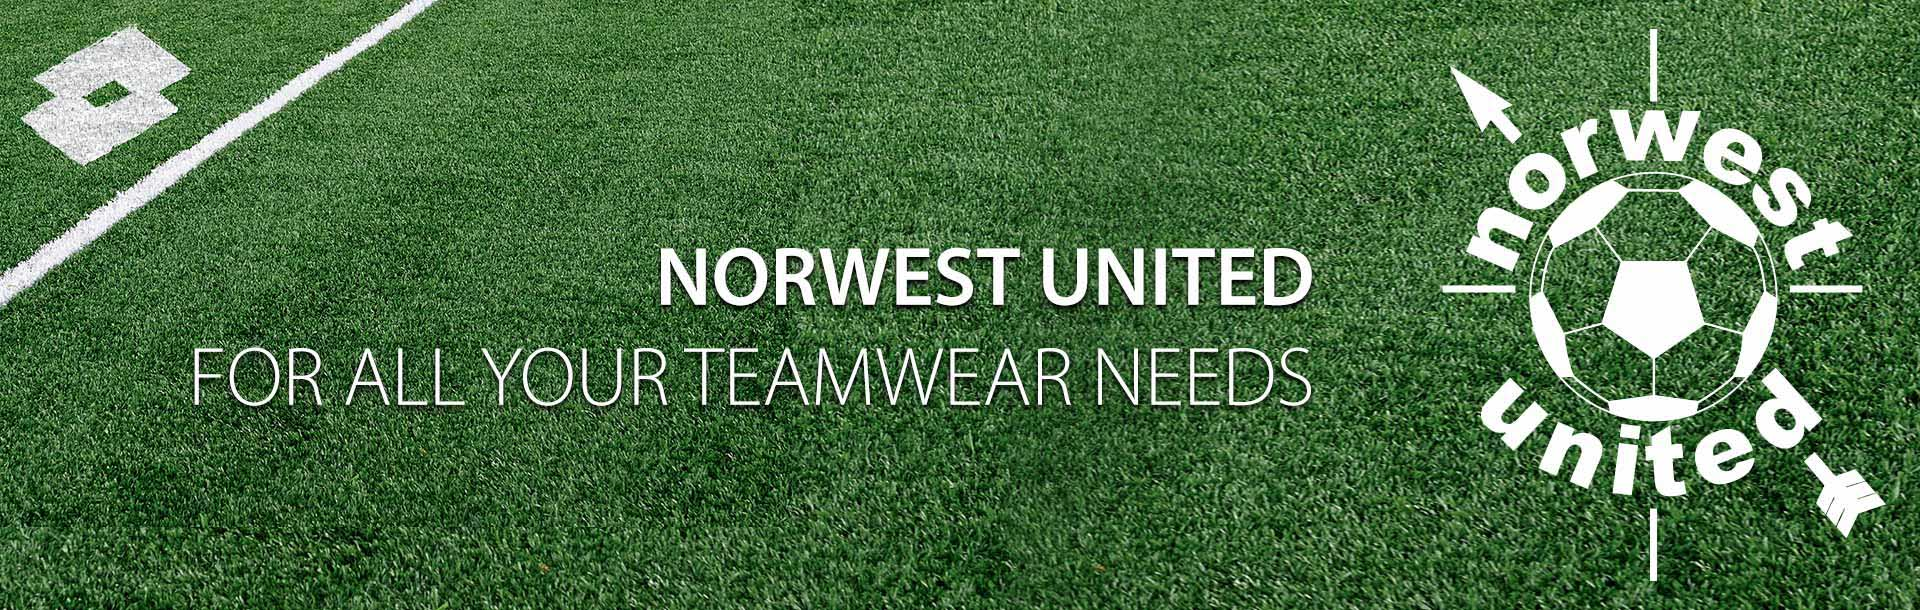 Norwest United